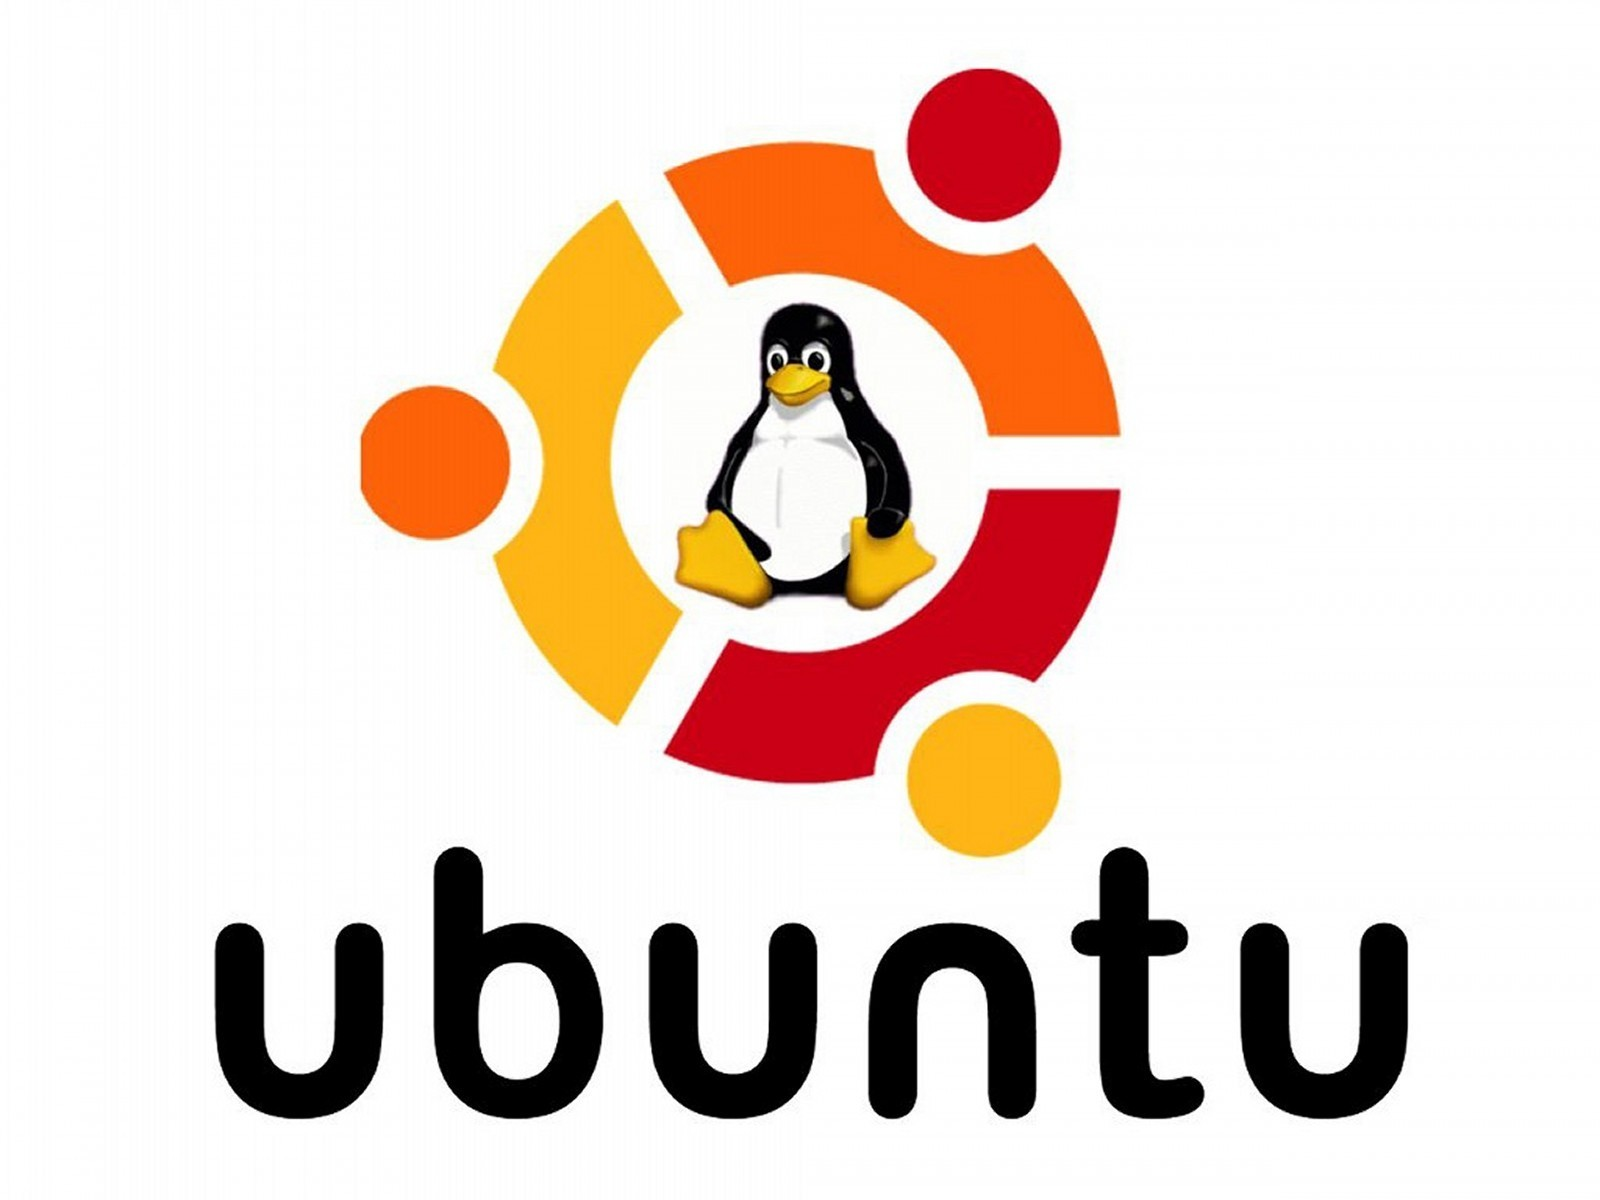 Free Ubuntu VPS From Interserver For 1 Month